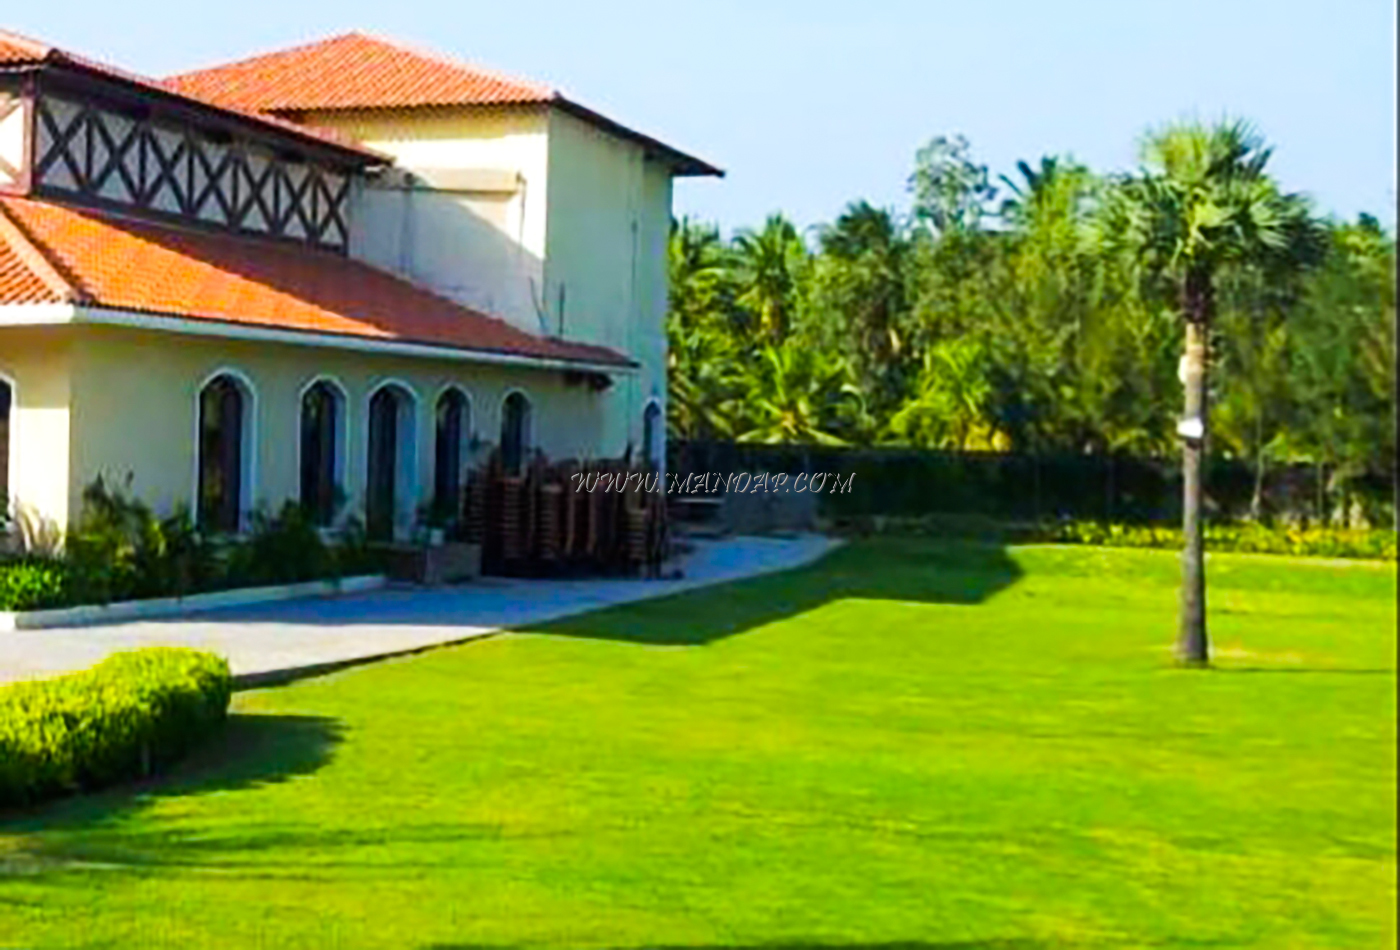 Find the availability of the Oceanspray Resort Trafalgar Square 3 in White Town, Pondicherry and avail special offers